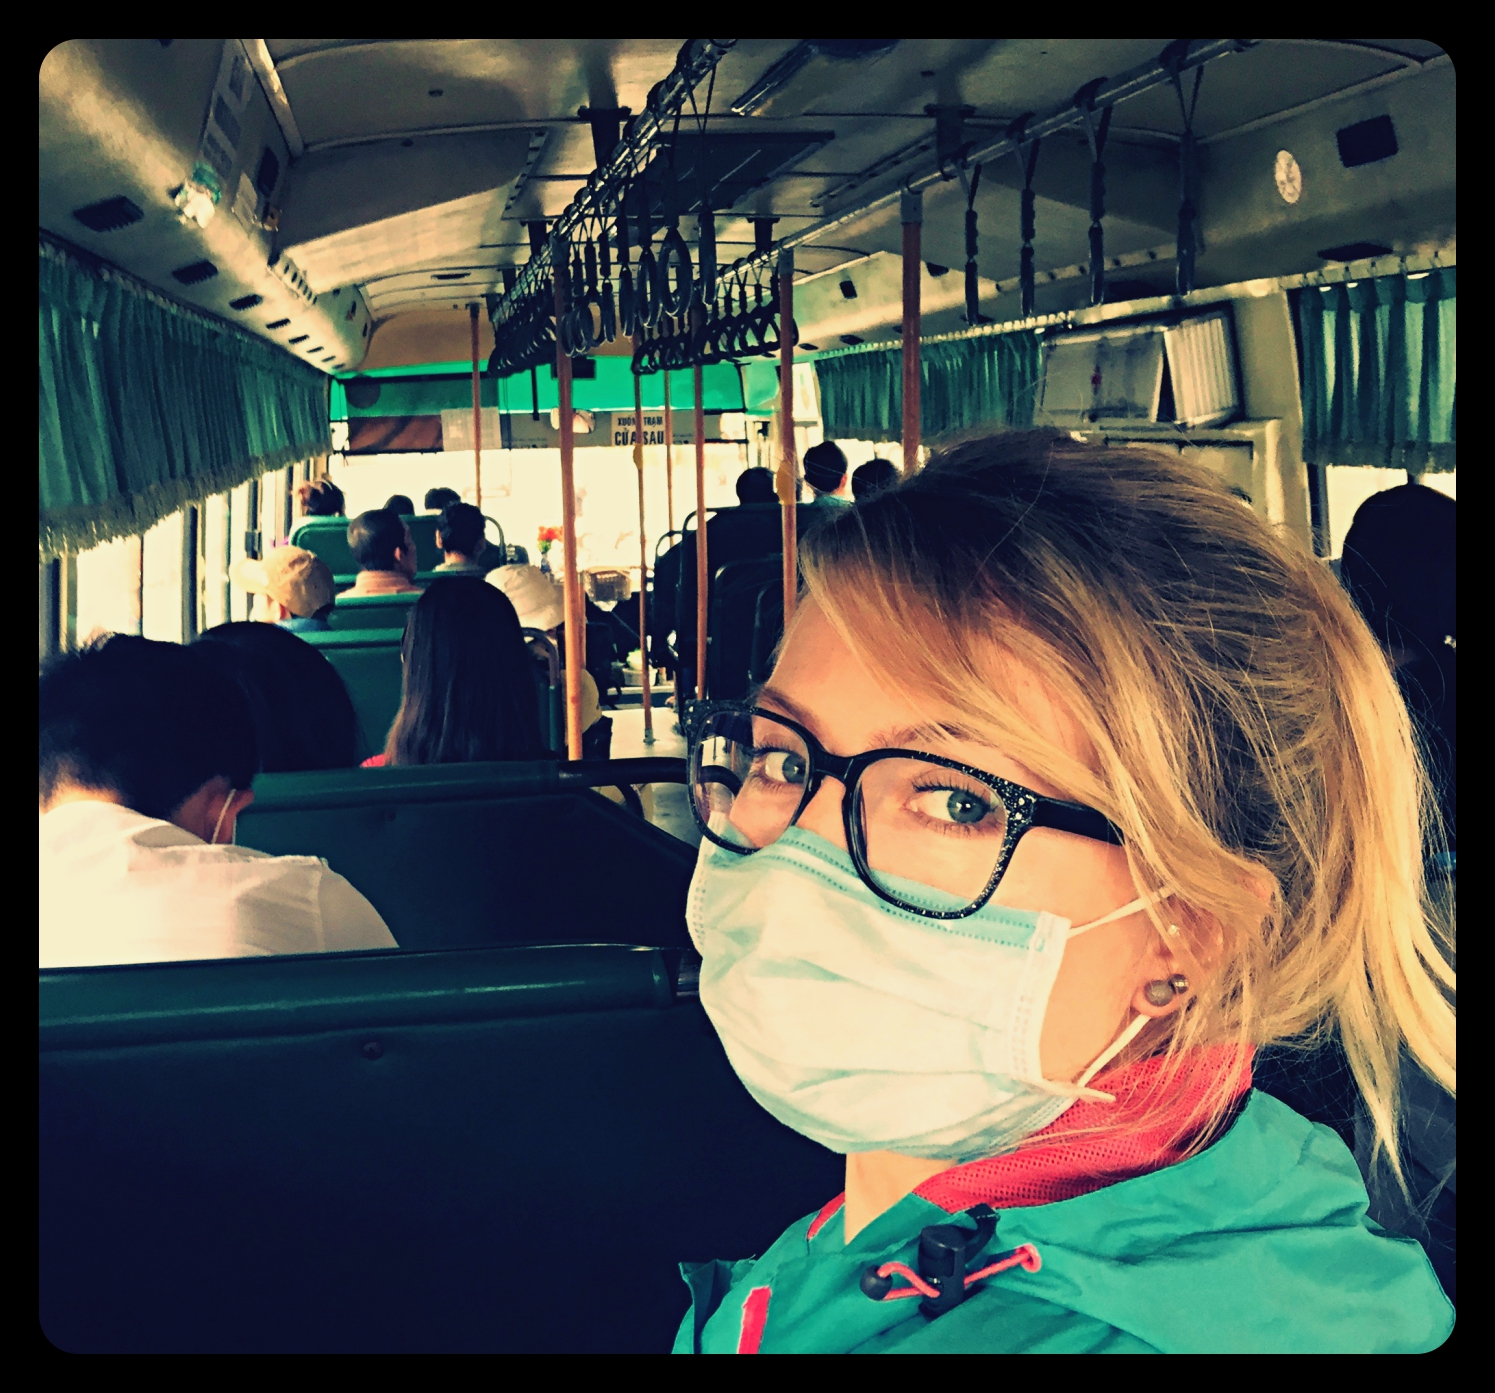 On the bus in Ho Chi Minh